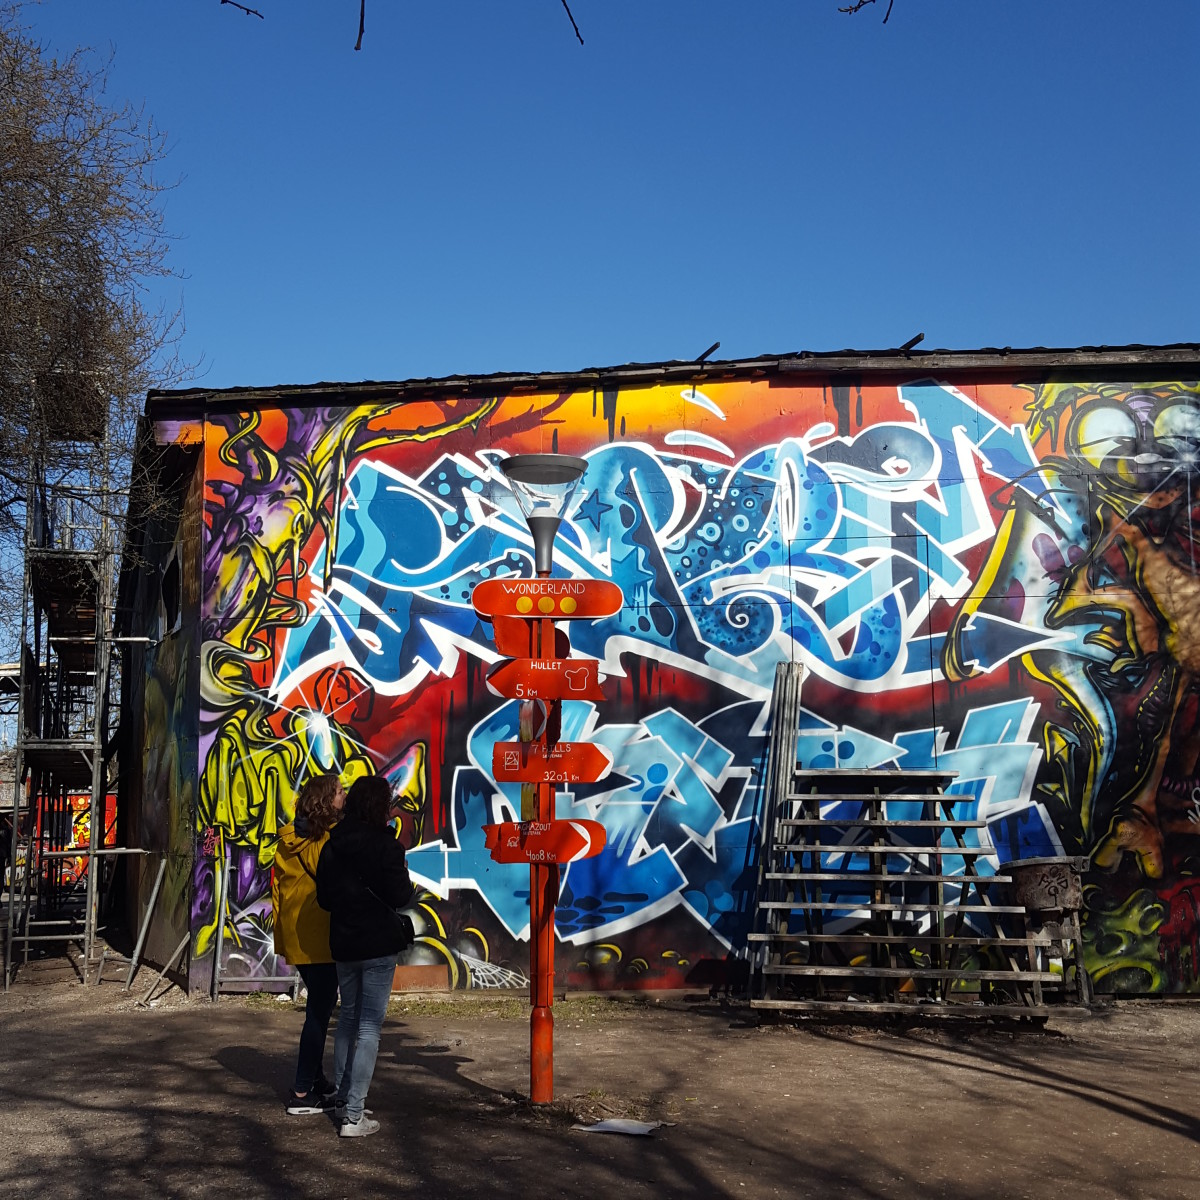 'Wonderland'.  A sign and some graffiti in Christianshavn's Freetown area.